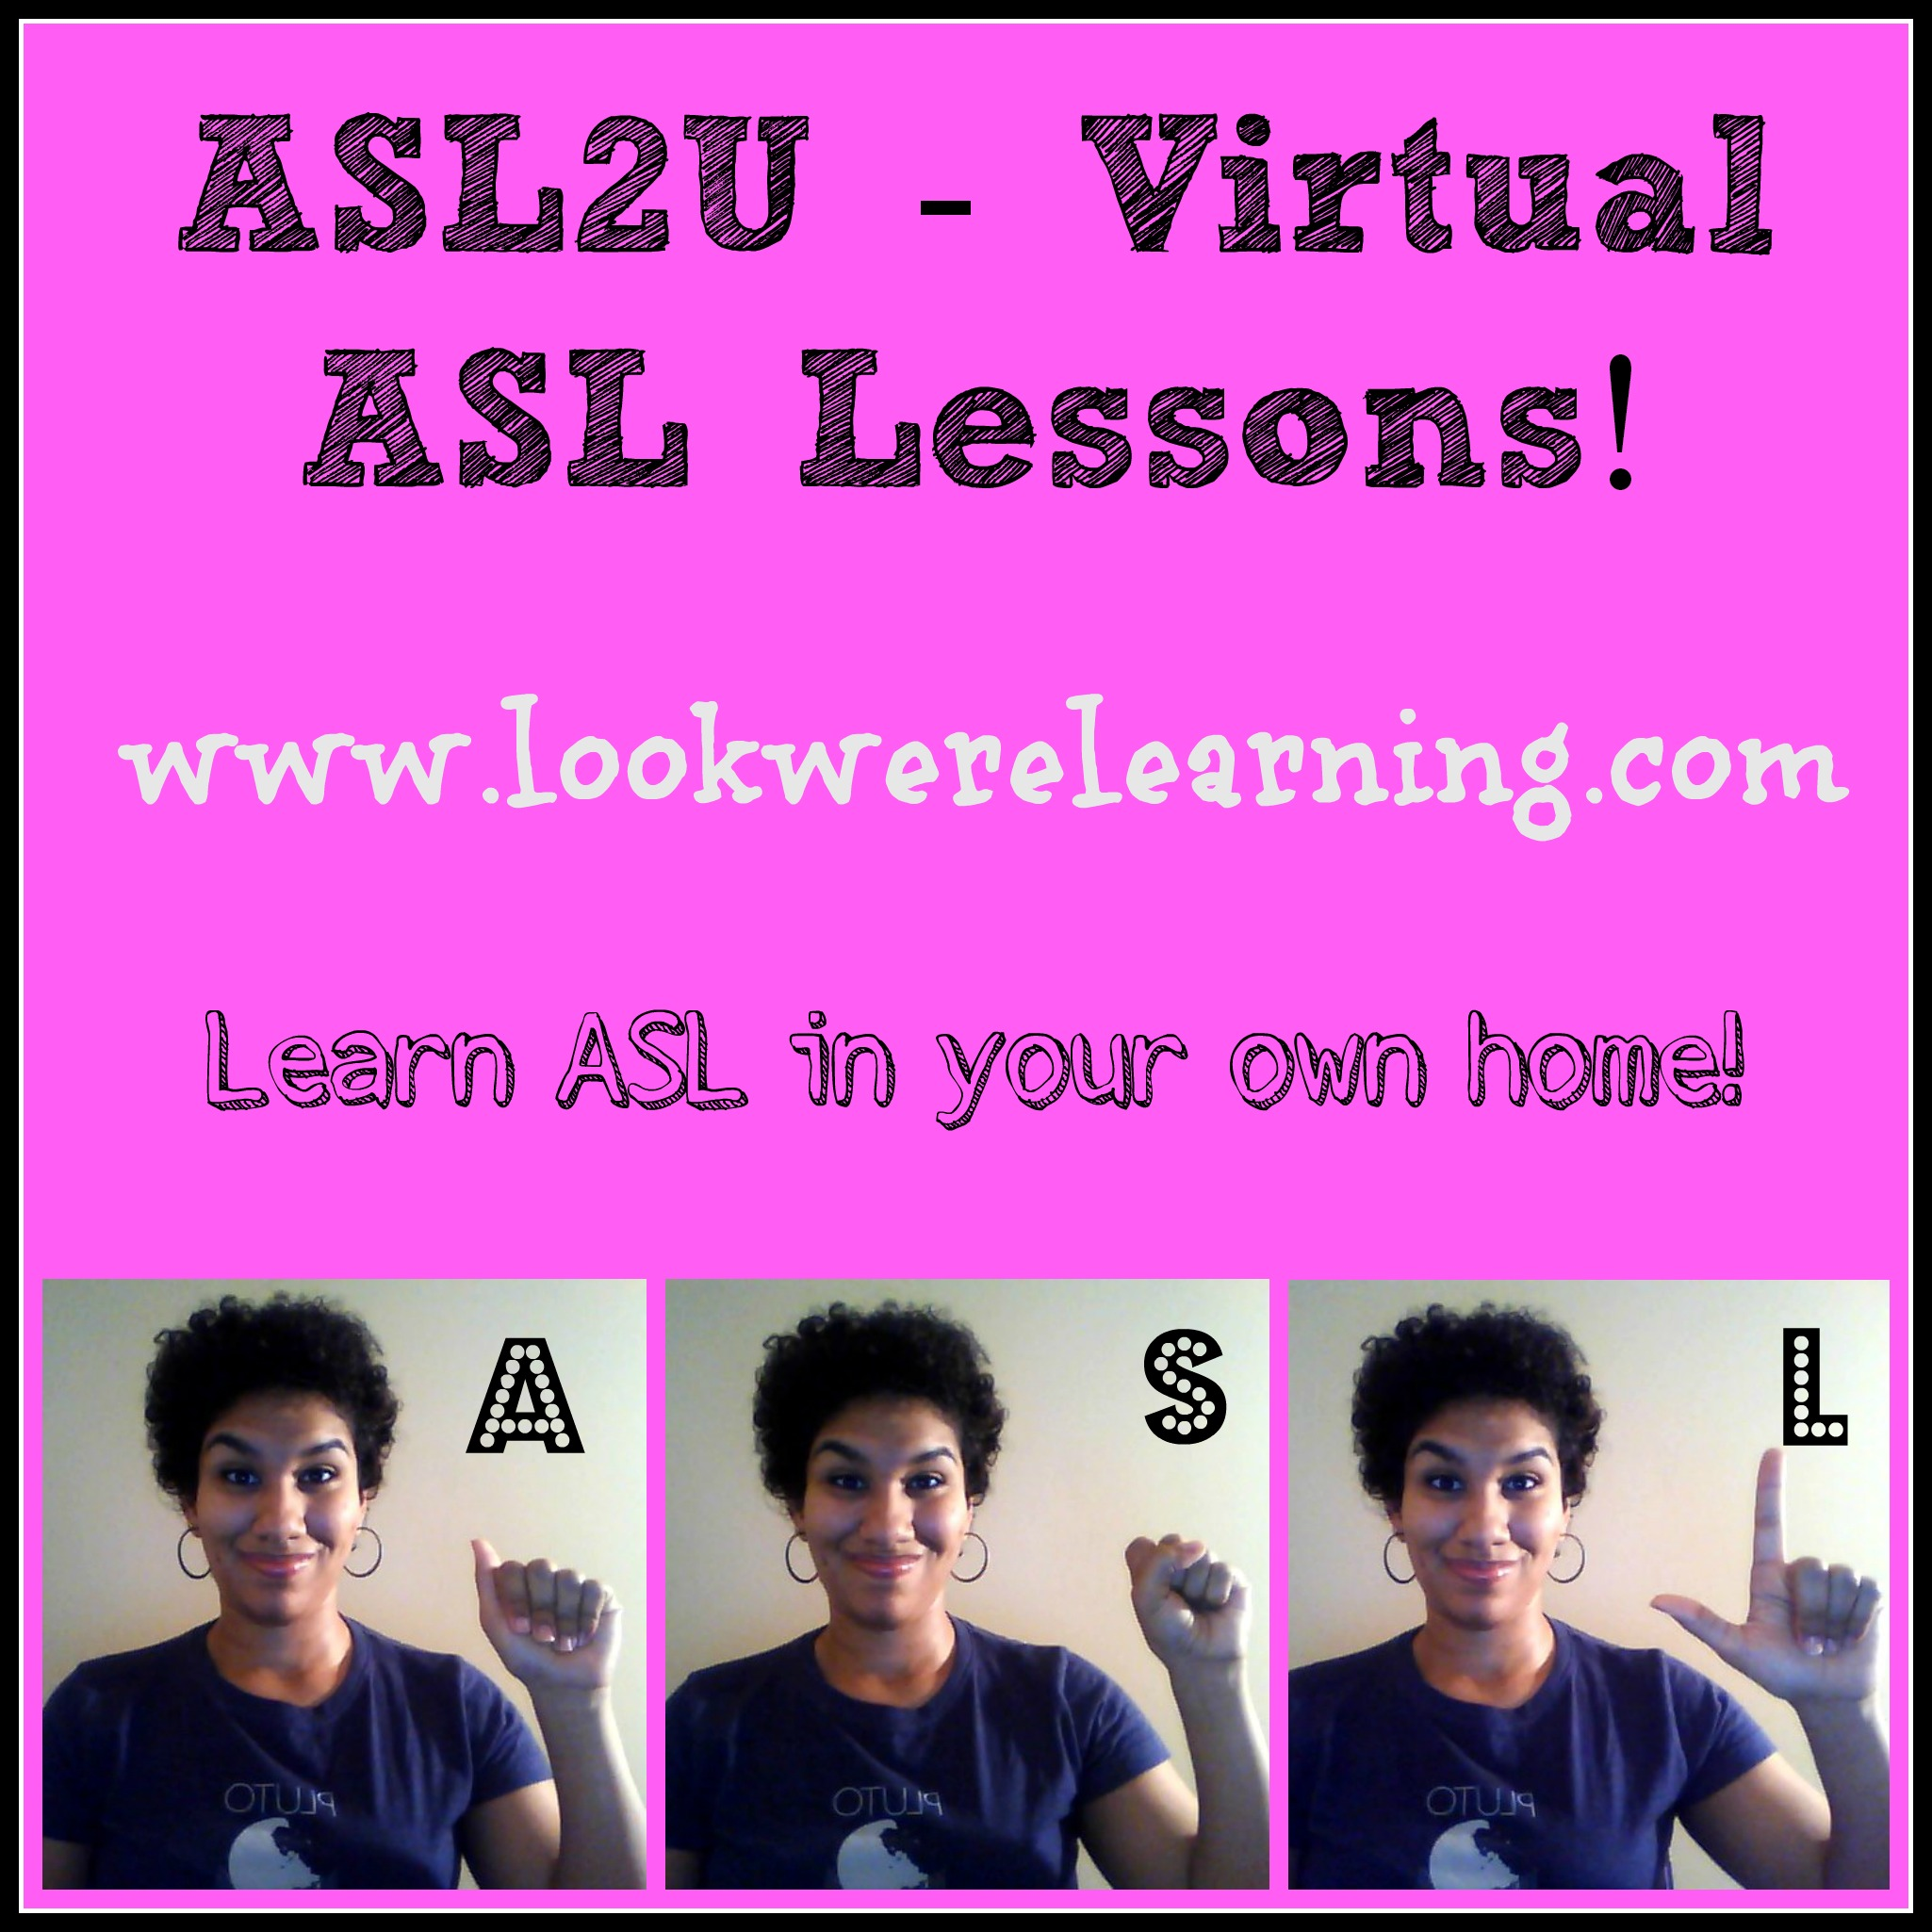 ASL2U Virtual ASL Lessons - Look! We're Learning!